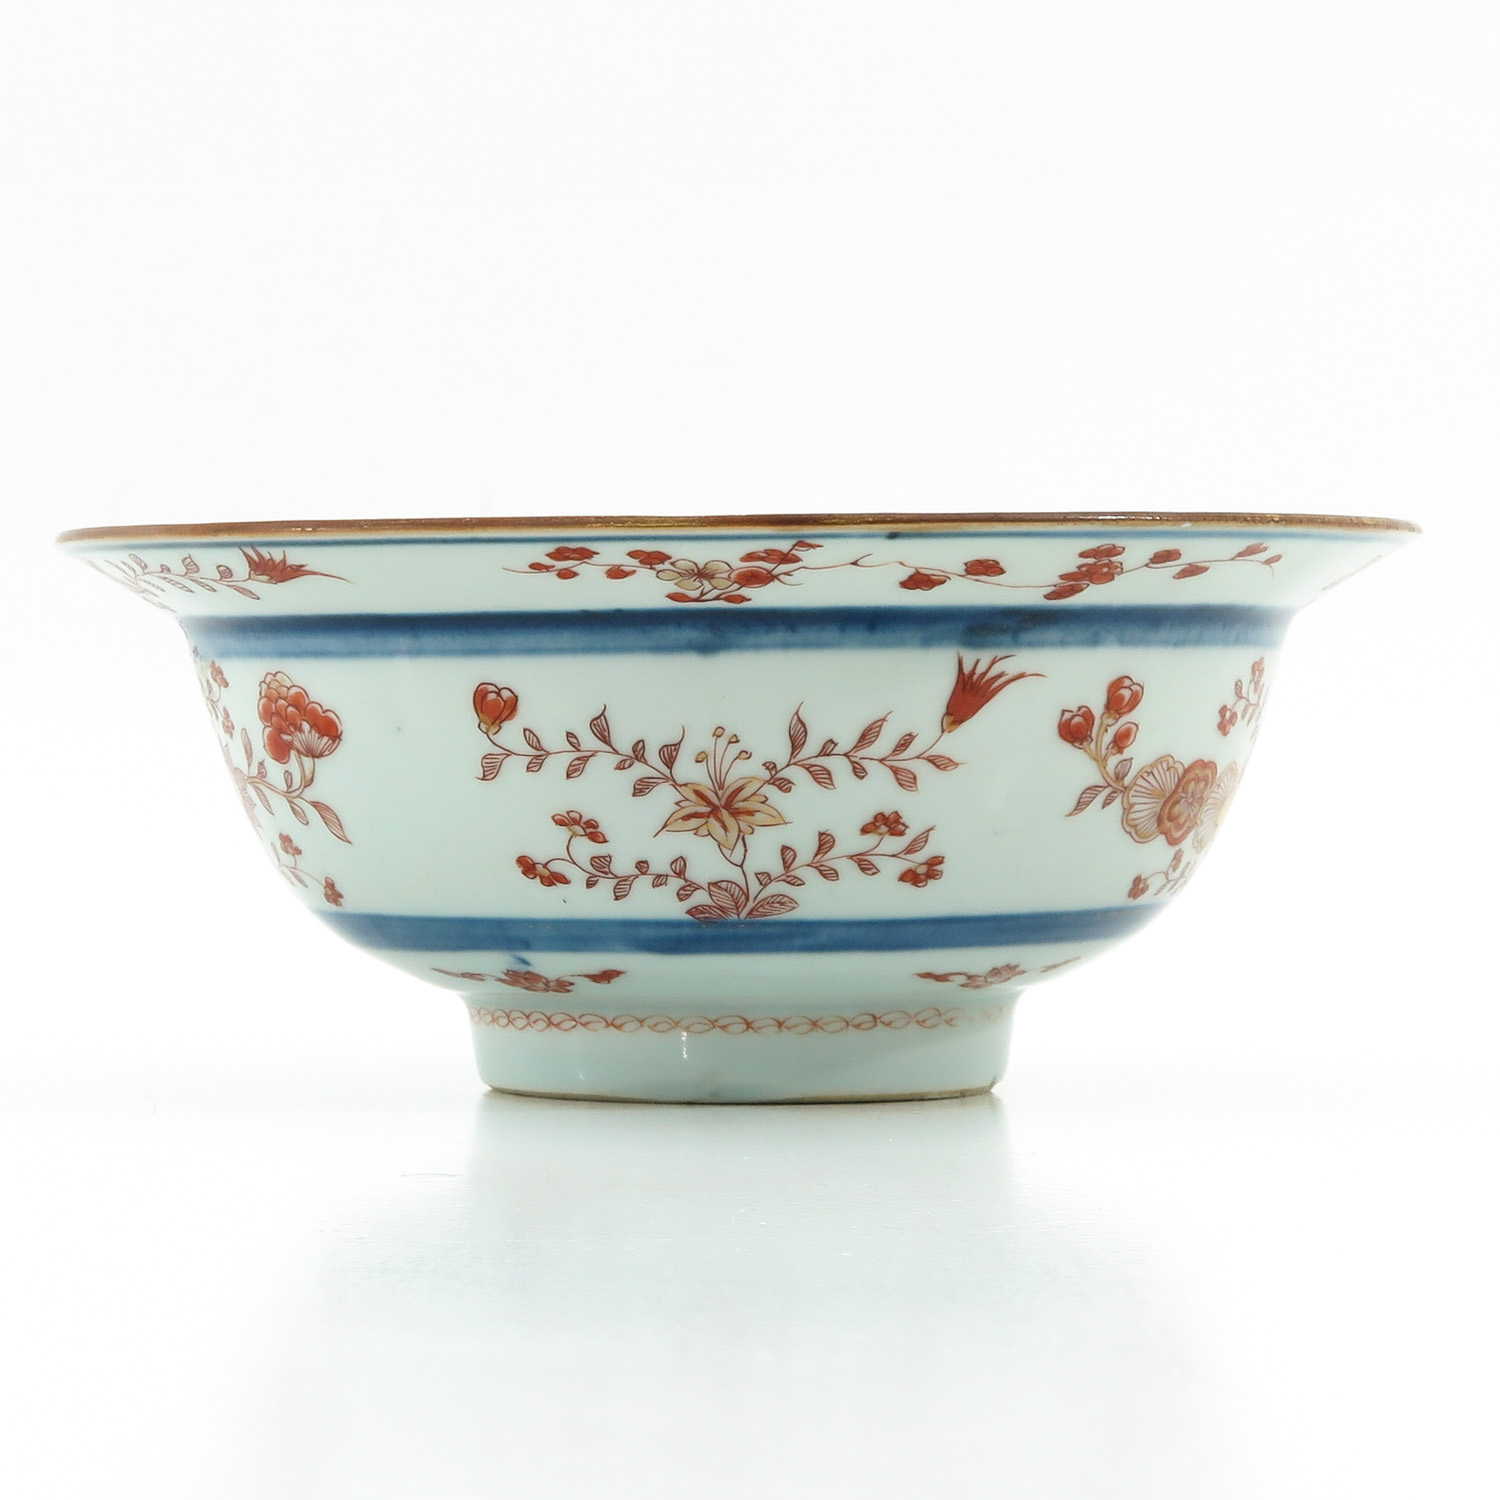 A Blue and Iron Red Bowl - Image 4 of 9